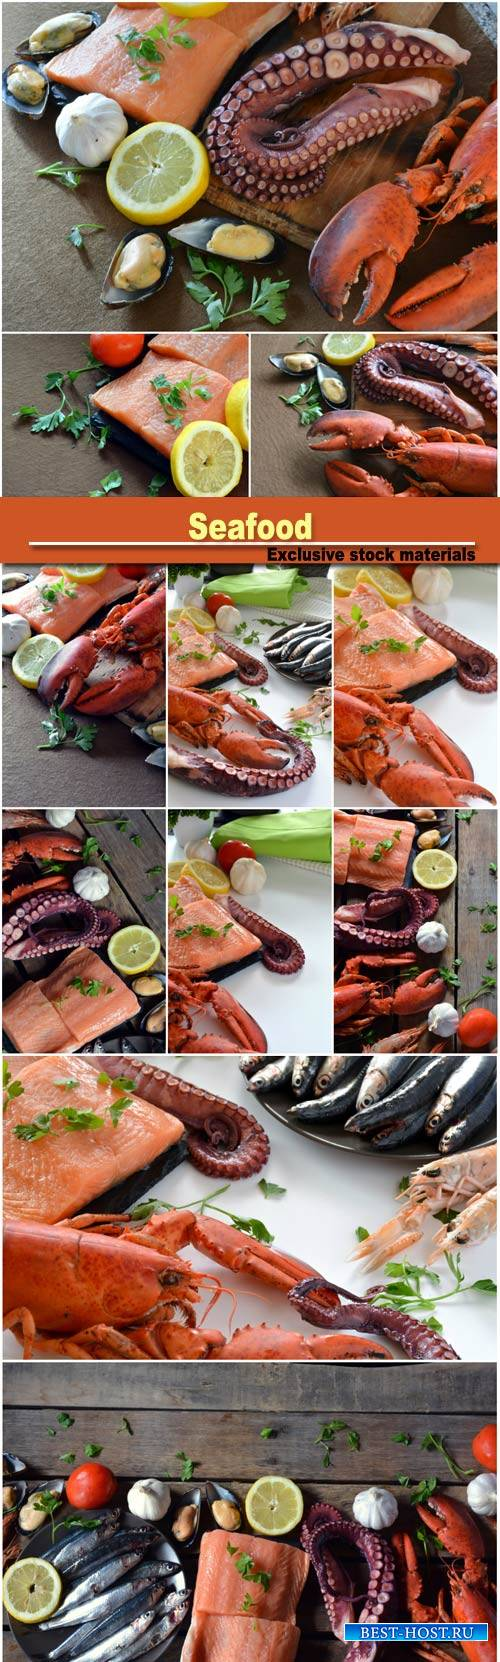 Seafood, lobster and octopus, fish